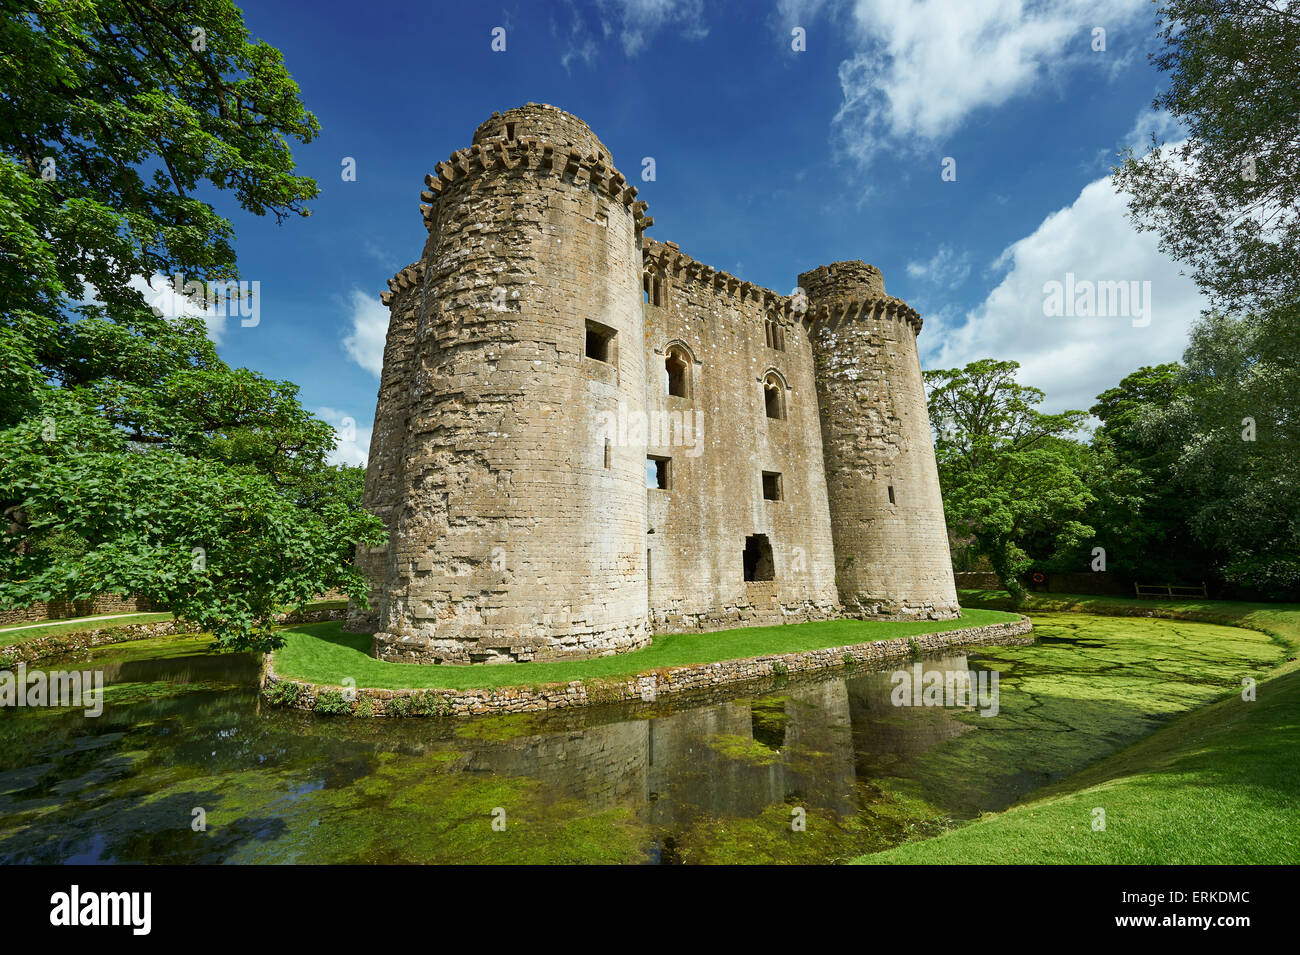 Nunney Castle built in the 1370s by Sir John de la Mere, Somerset, England, United Kingdom Stock Photo